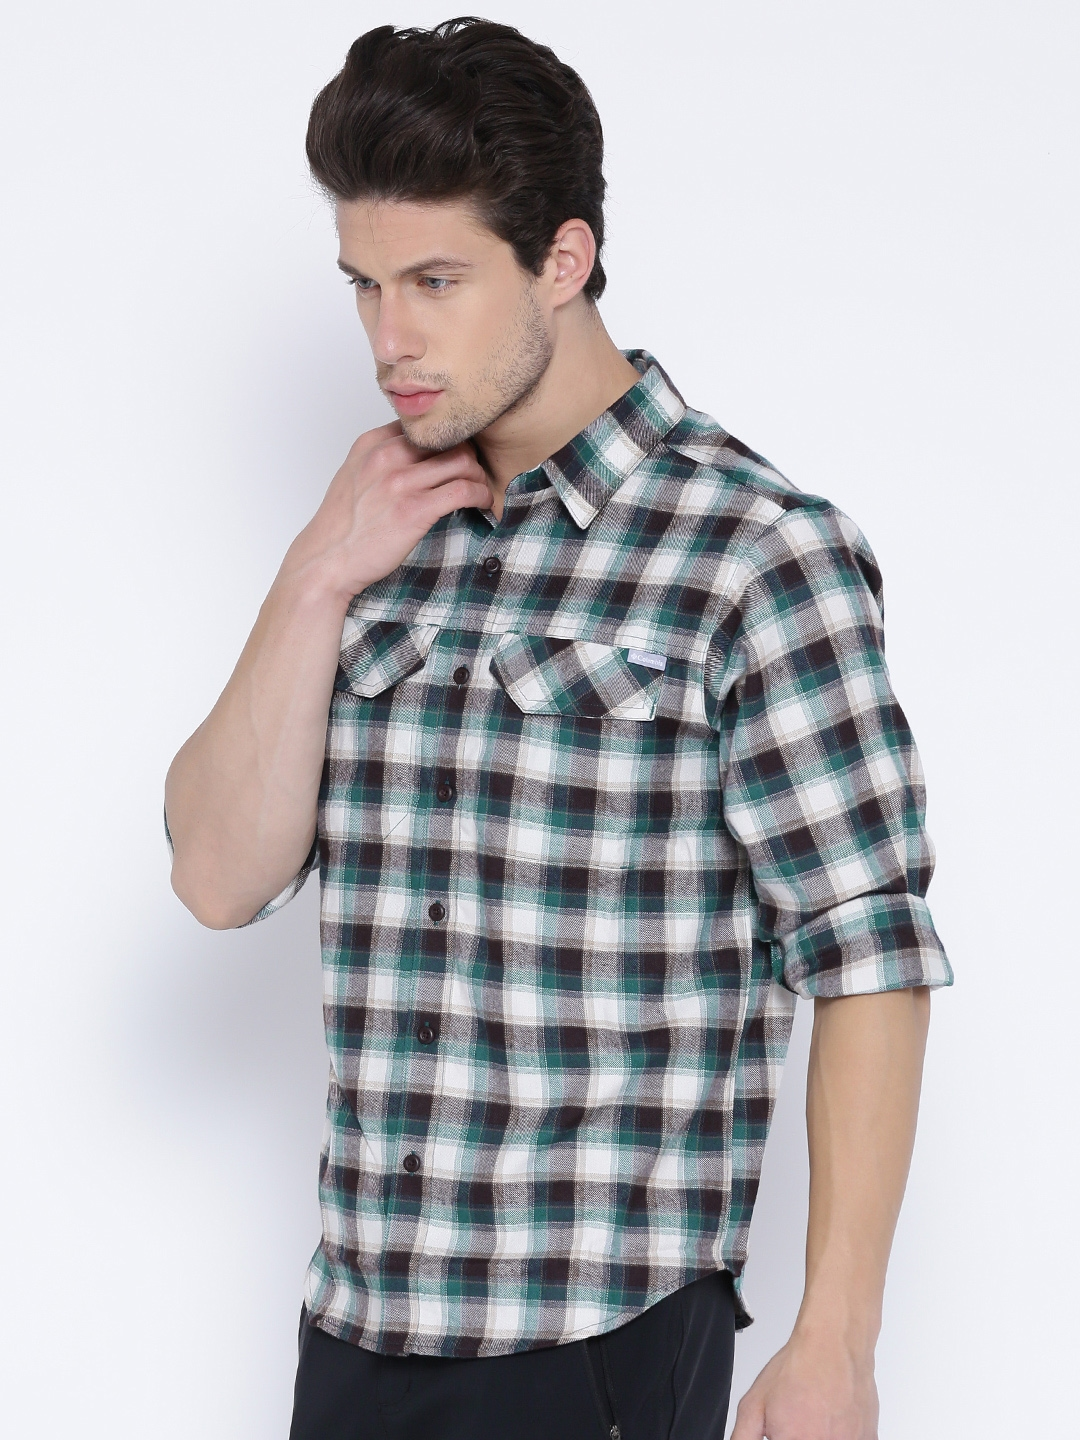 070f0041161 Columbia Men Teal Green & Cream-Coloured Silver Ridge Flannel Checked  Outdoor Shirt